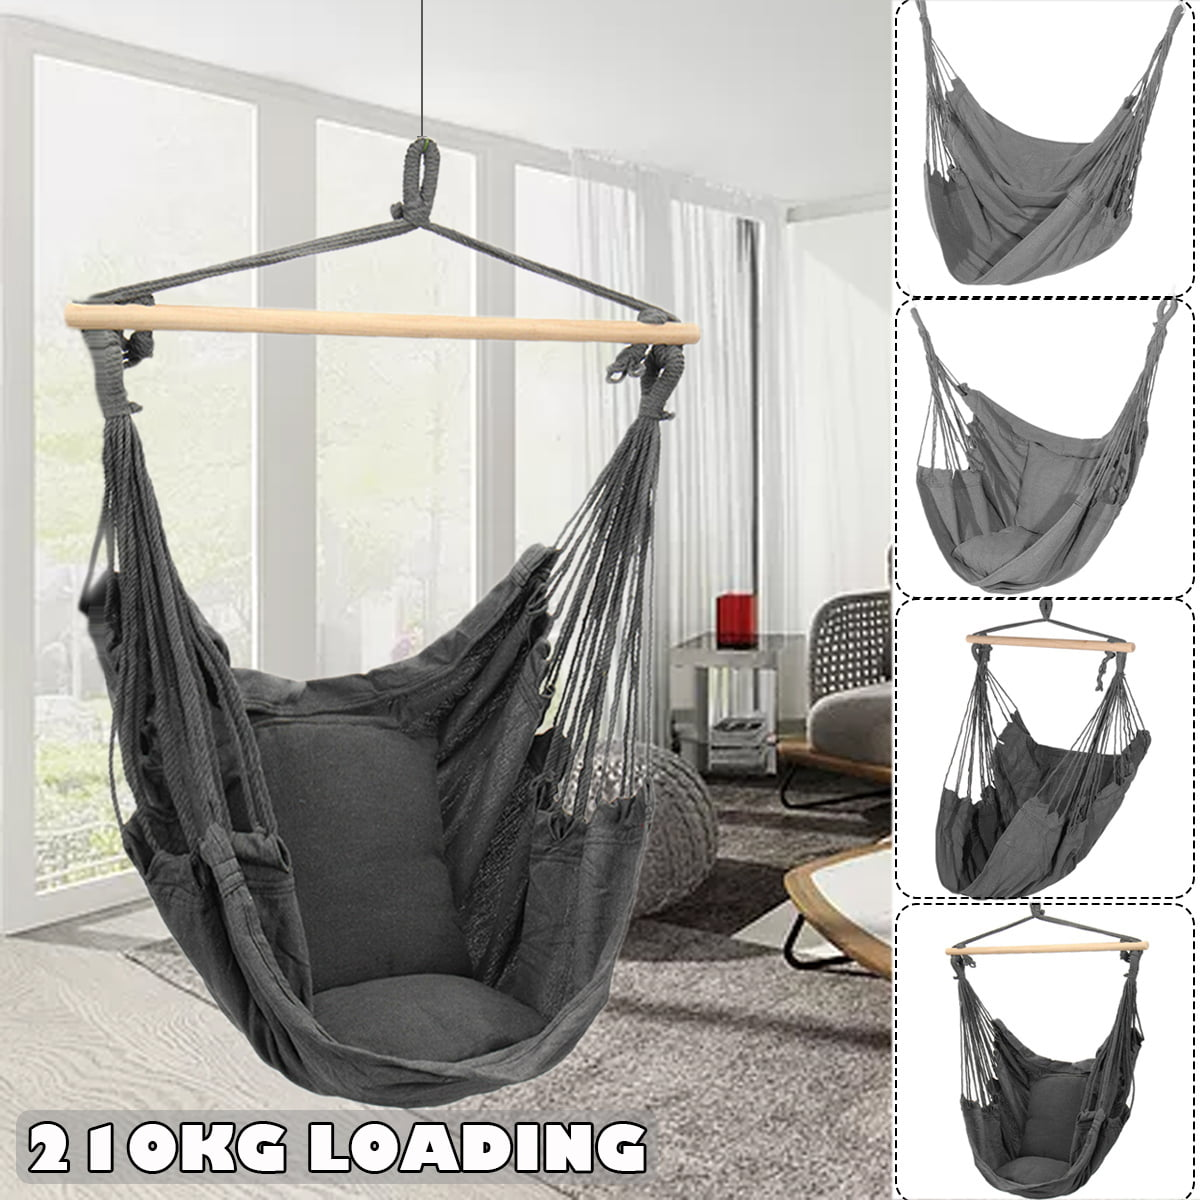 Picture of: 4 Options Hanging Hammock Chair Seat Cotton Swing Seat Set Hanging Hardware Kit Hammock Rope Chair Cushion For Home Garden Patio Porch Indoor Outdoor Walmart Canada